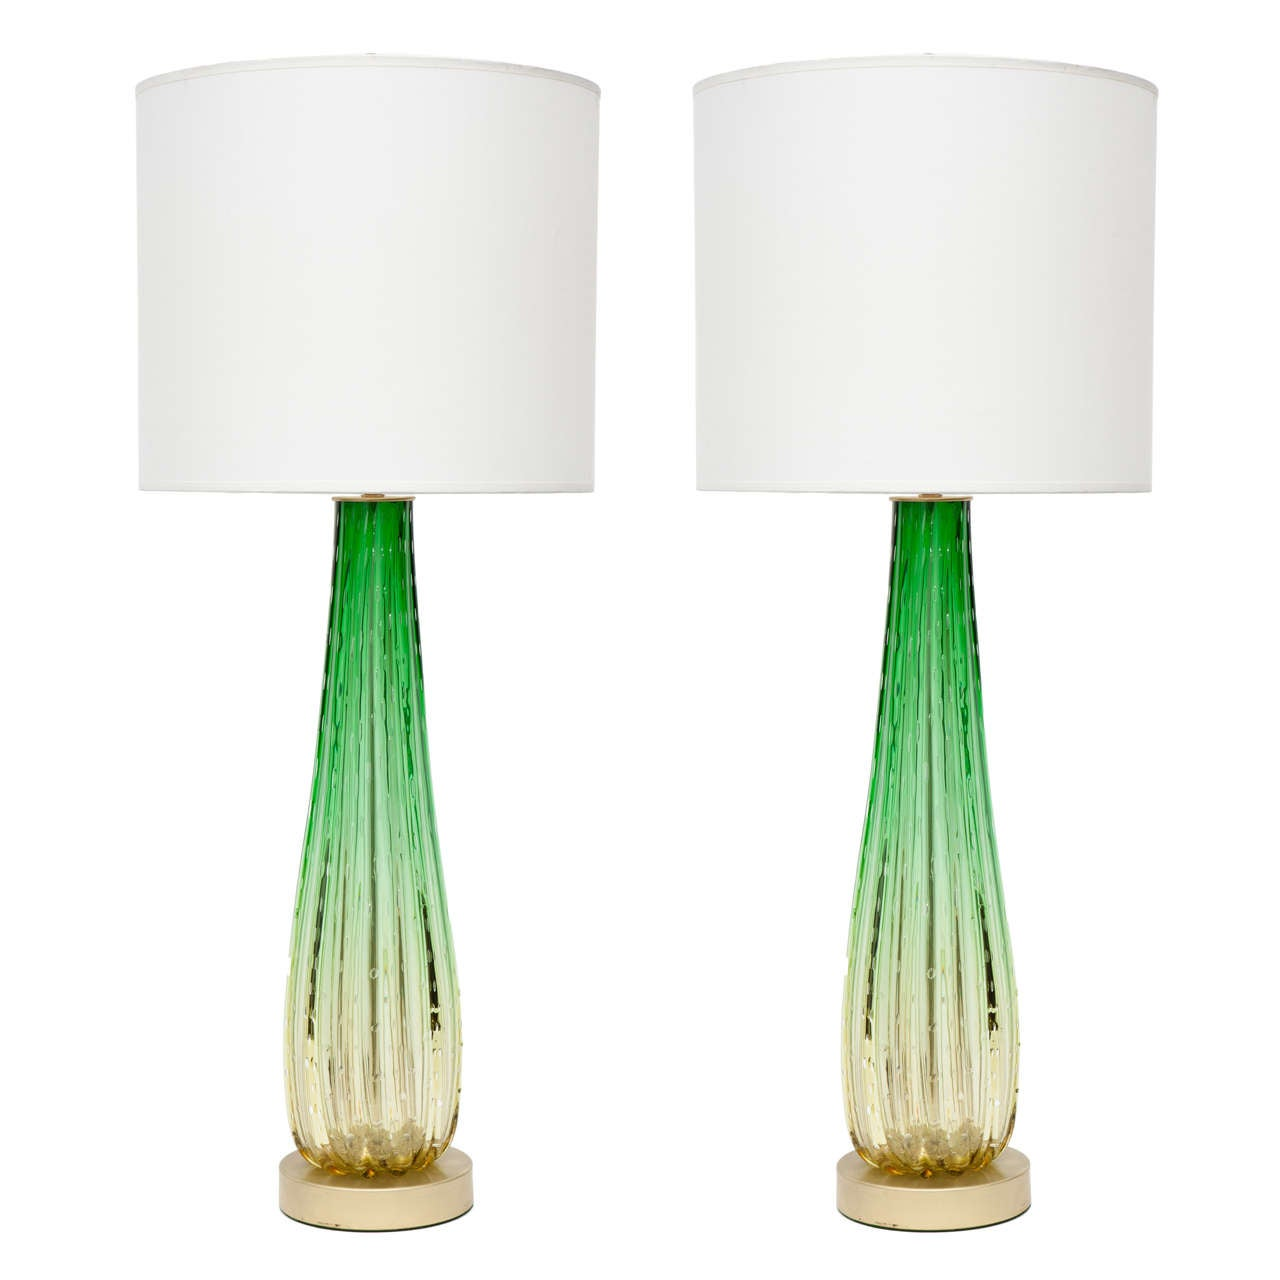 Pair of Pale Citrus and Emerald Green Murano Glass Lamps by Barovier